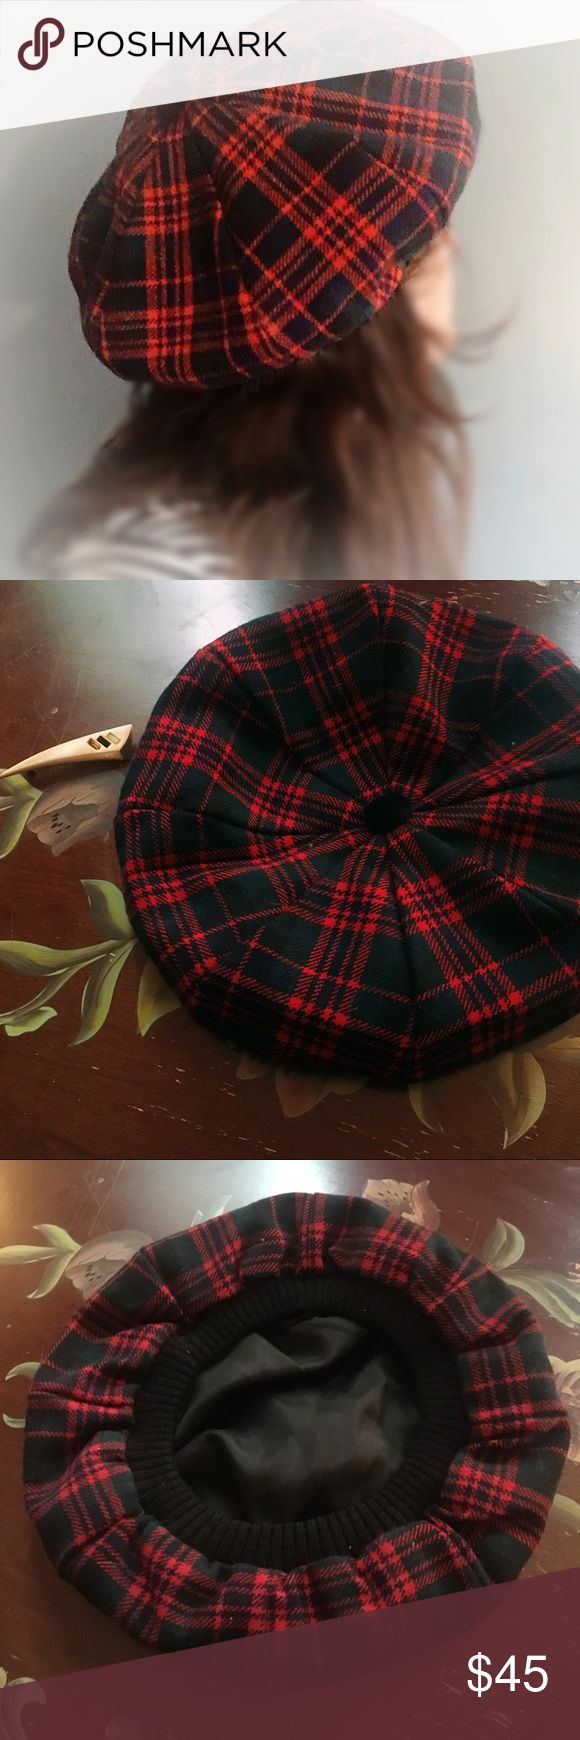 Vintage Plaid Beret Vintage Plaid Beret 🔹GUC   🔹vintage means over 20yrs old & may show signs of wear & age   🔹please ask questions   🔹please be kind -let's negotiate   🔹Happy Shopping 😊   🍁🍂 FALL READY PIECE 🍂🍁 Vintage Accessories Hats